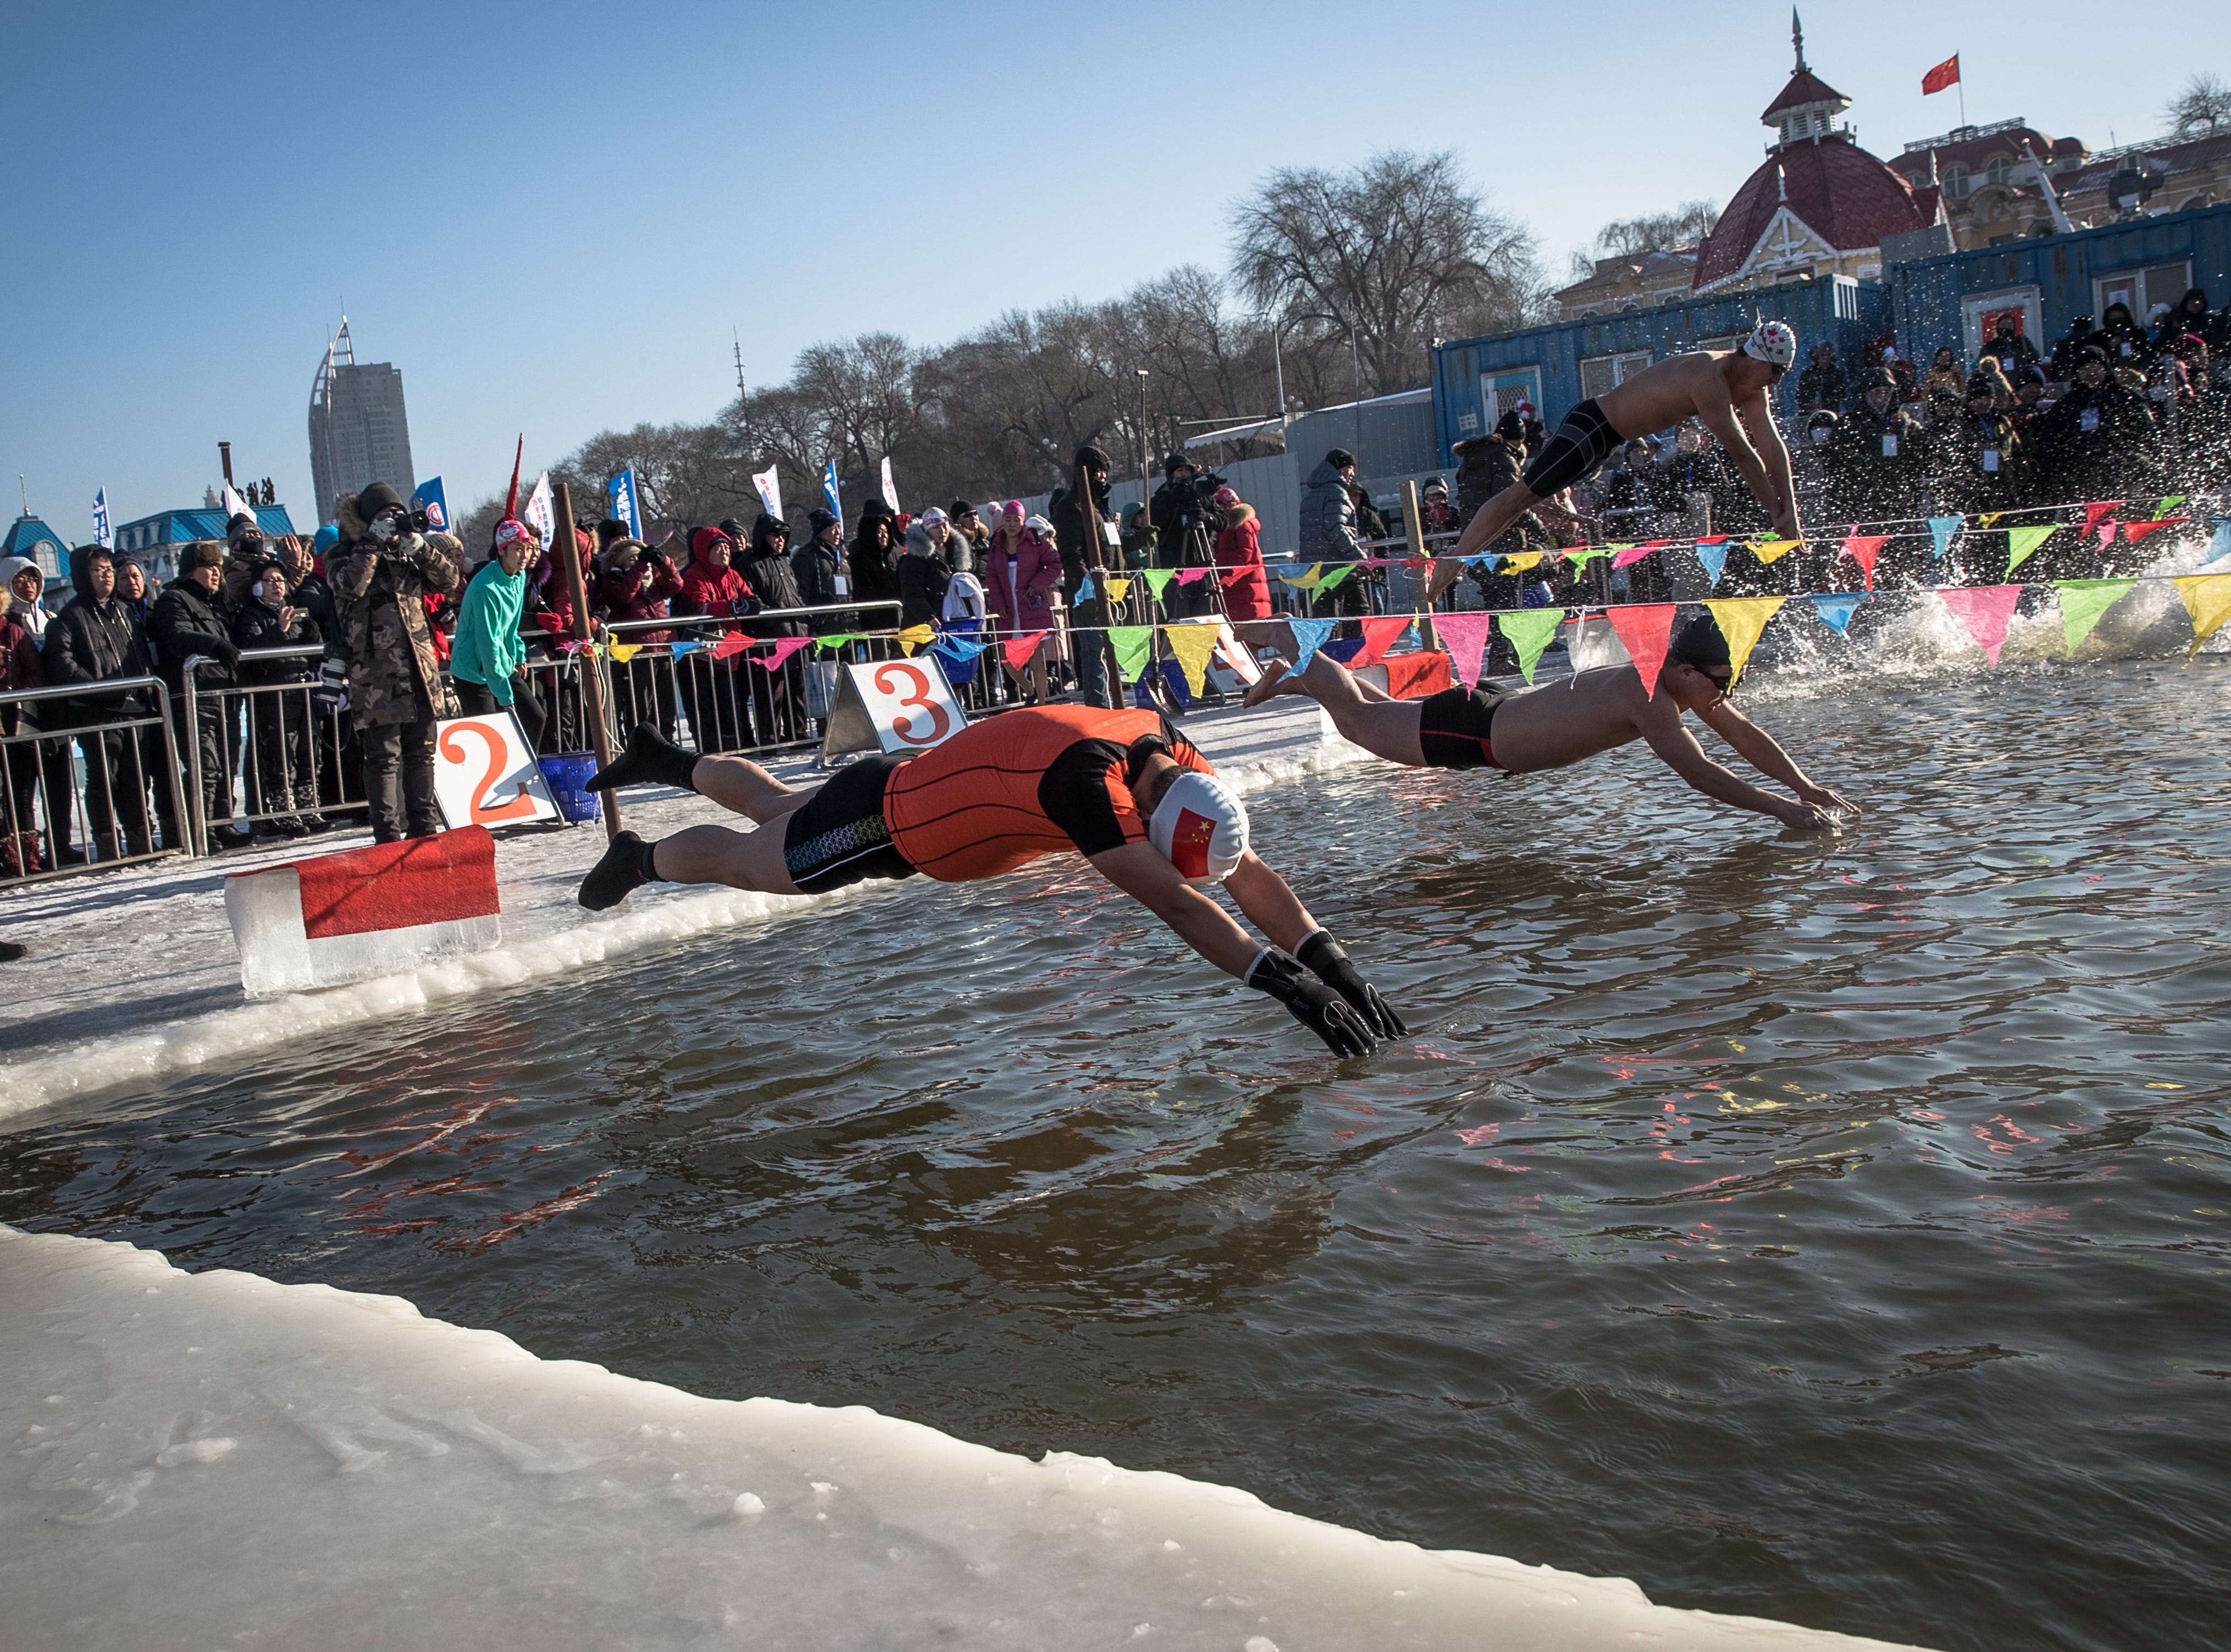 Participants jump into the freezing water of the Songhua River during a winter swimming competition at the annual Harbin International Ice and Snow Sculpture Festival, in Harbin, Heilongjiang province, China on Jan. 5, 2019. Around 600 winter swimmers took part in the competition.